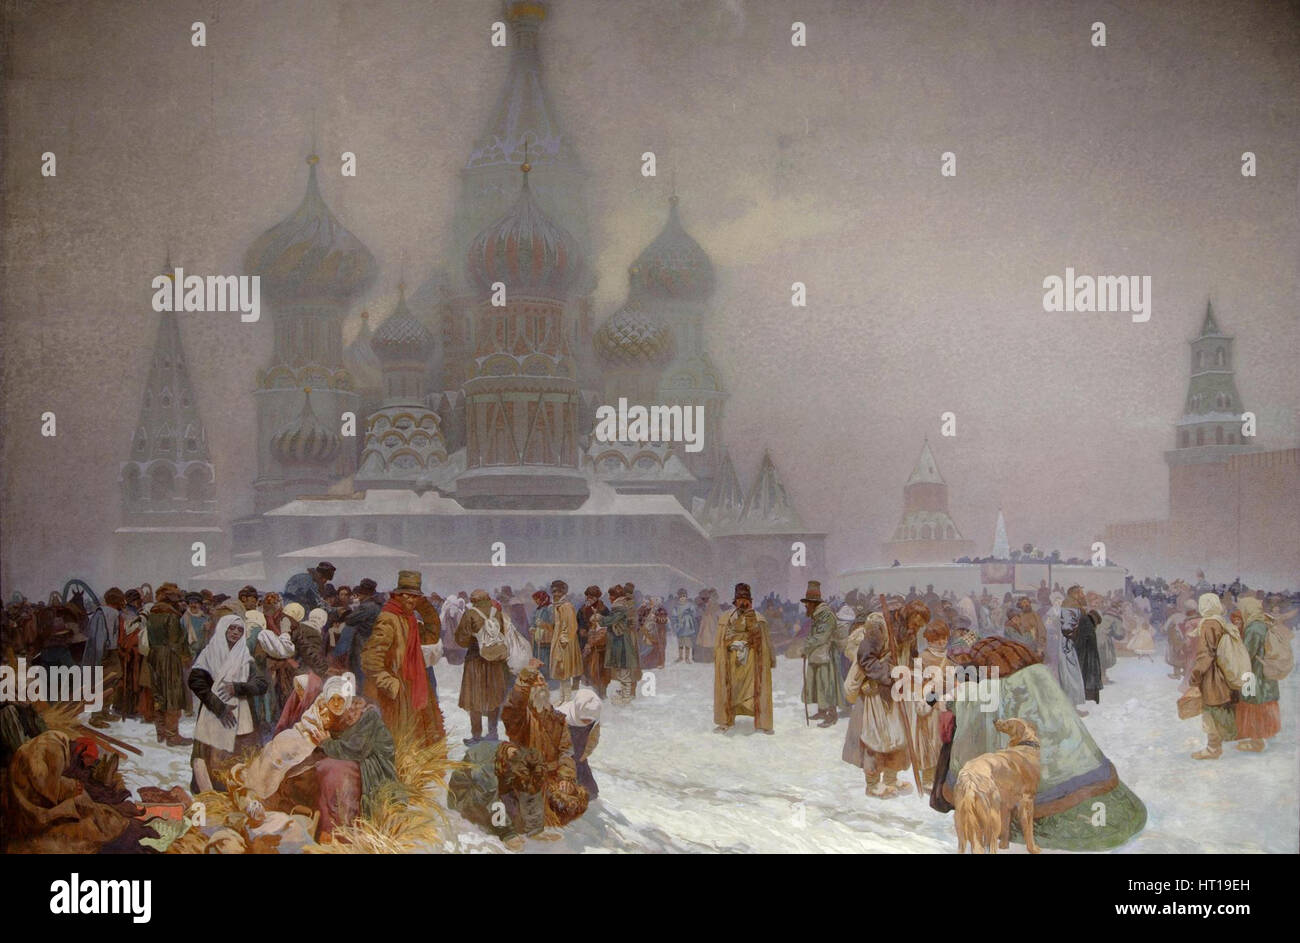 The abolition of serfdom in Russia: causes and consequences 68